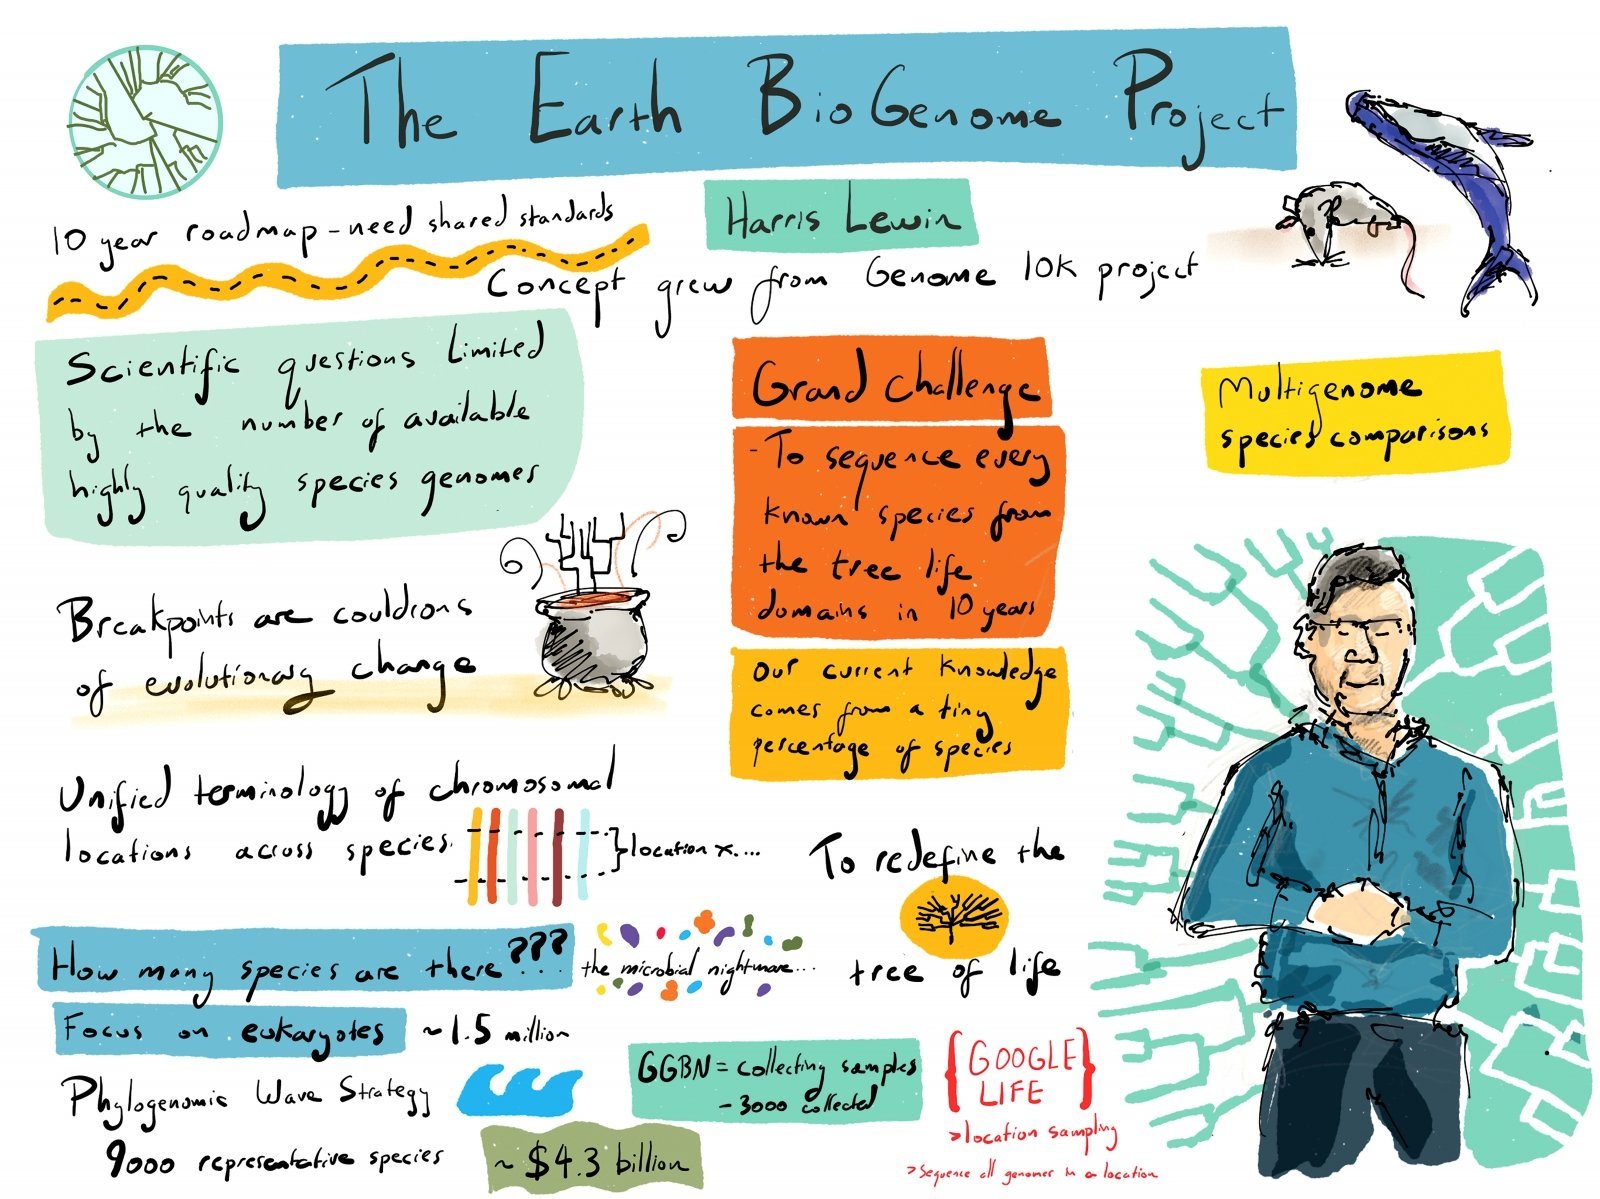 Scientific illustrator Alex Cagan live-sketched the presentation Lewin gave on the Earth BioGenome Project at England's Wellcome Sanger Institute in May 2017. (Illustration courtesy of Alex Cagan)